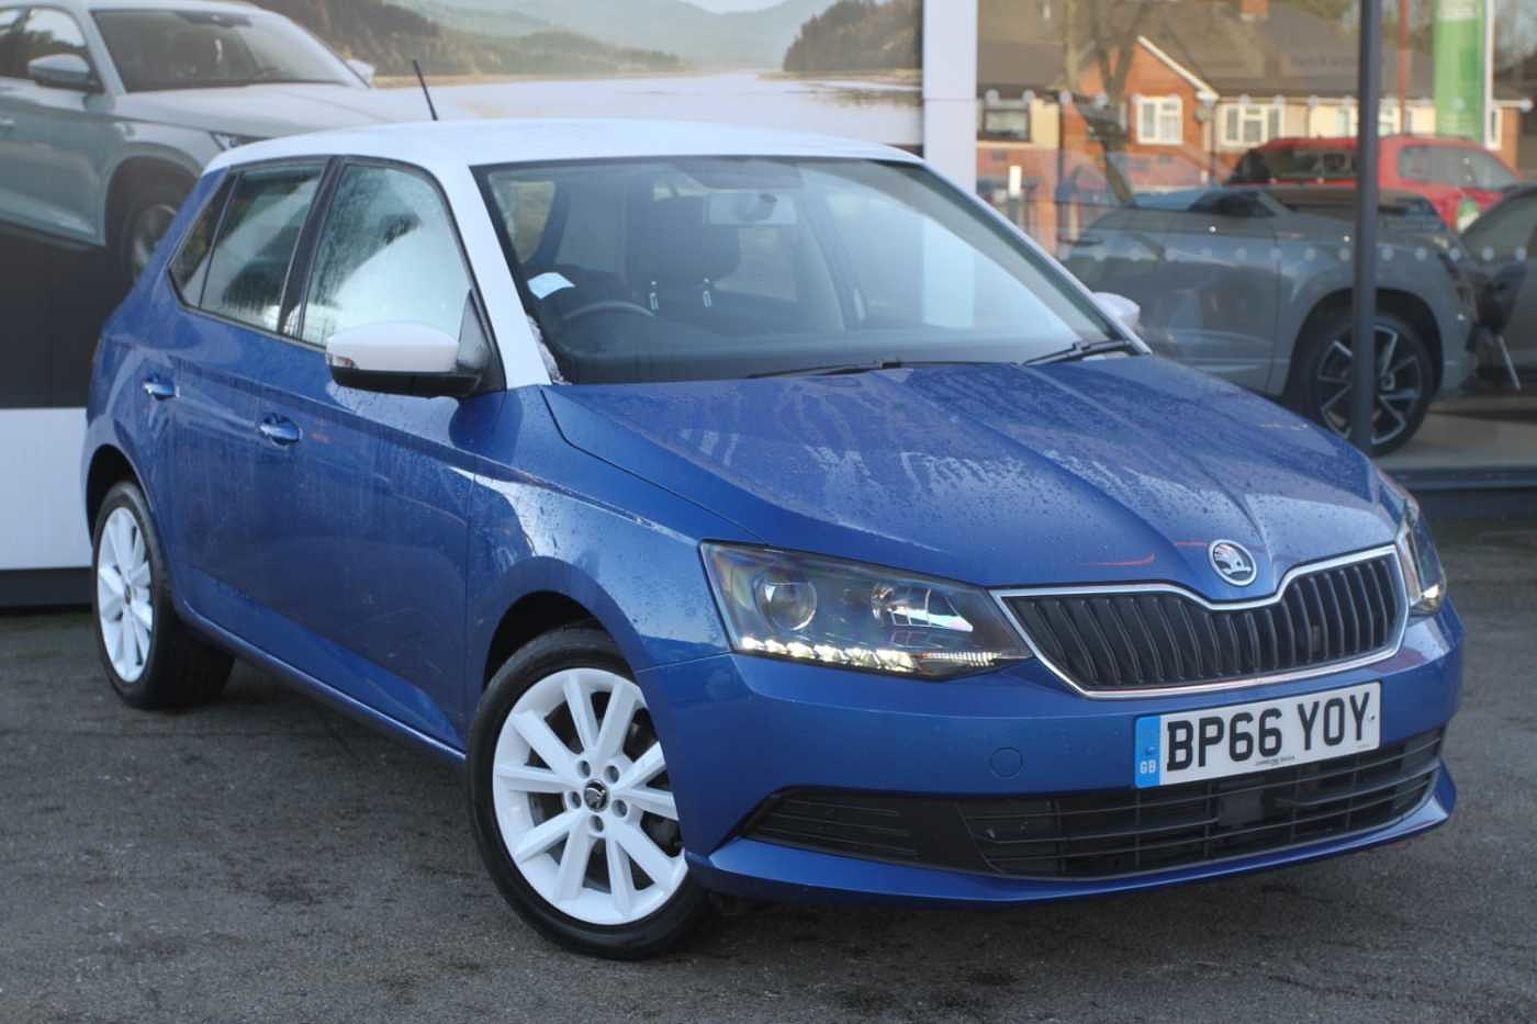 SKODA Fabia 1.0 MPI (75ps) Colour Edition (s/s) 5-Dr HB